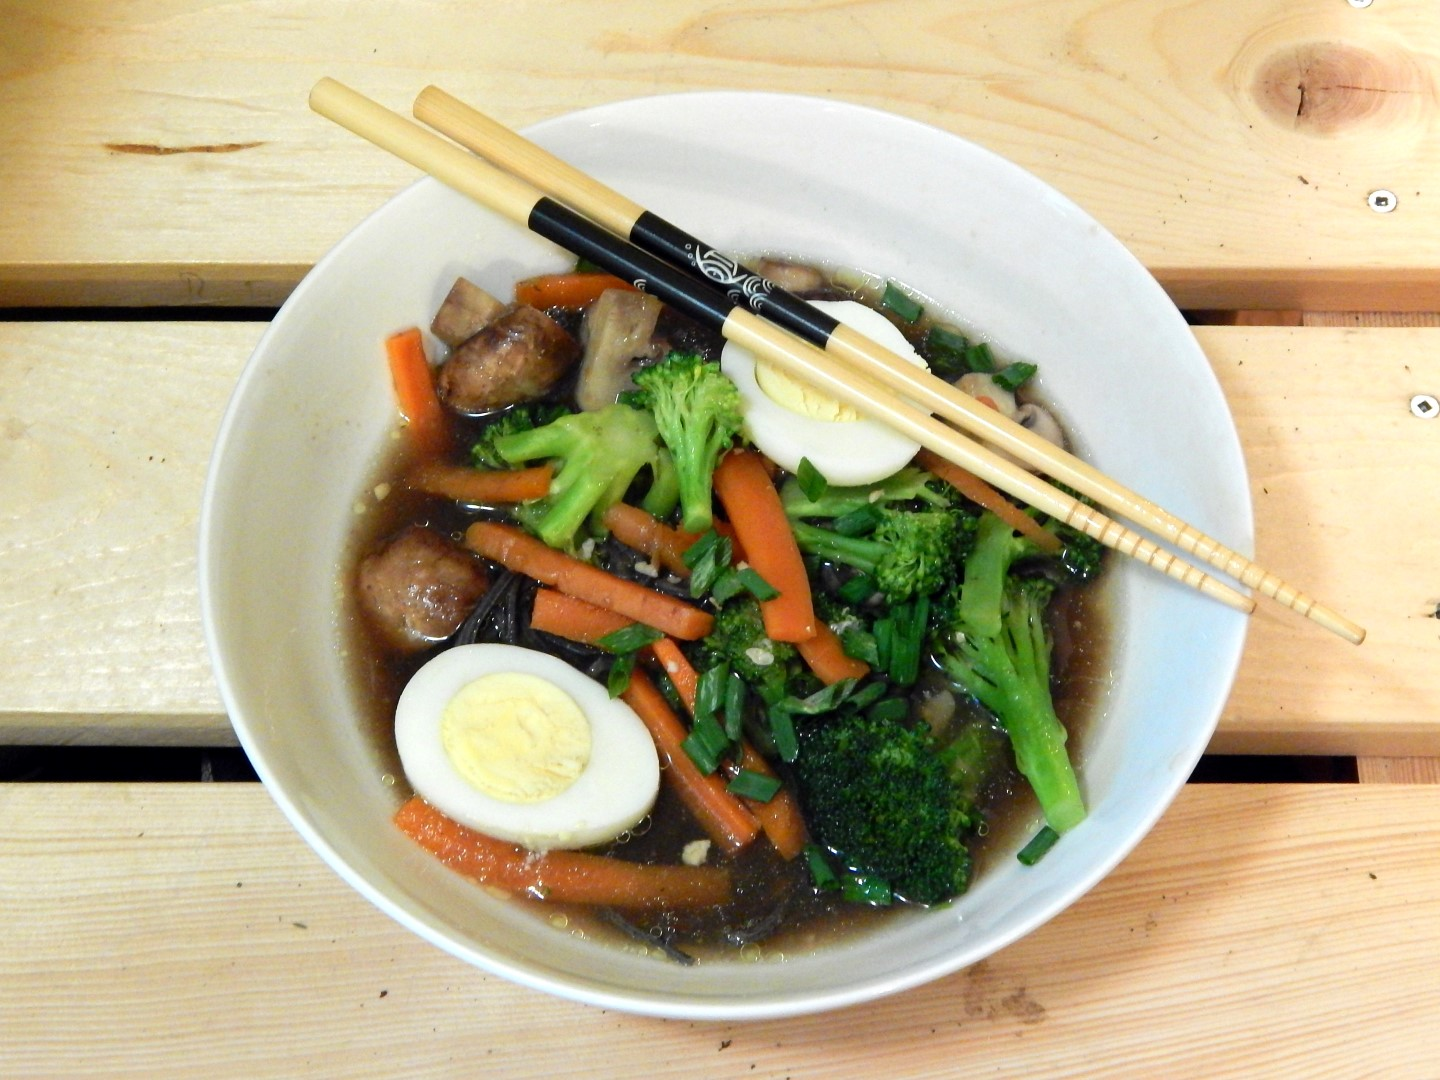 Miso soup broth with eggs and vegetables.